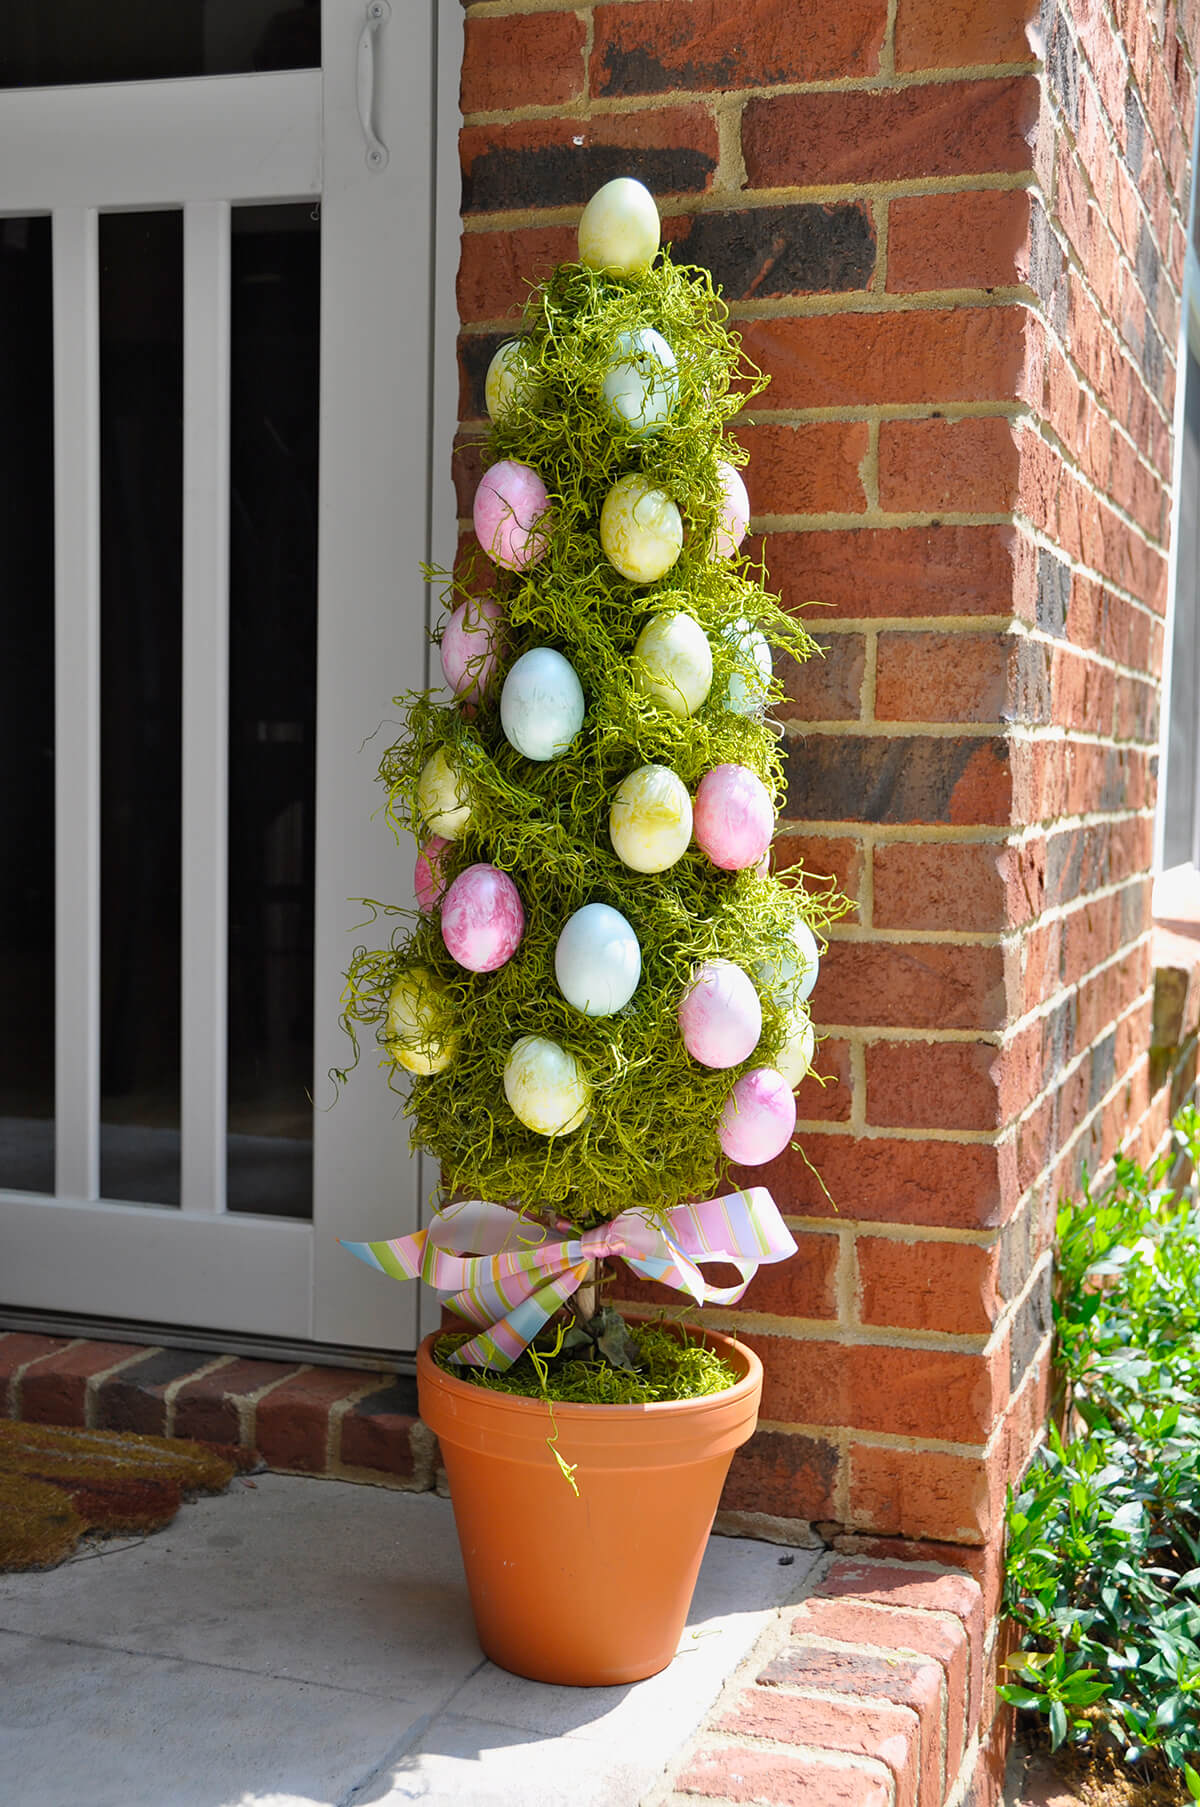 DIY Easter porch decor ideas | Easter | porch | porch decor | decor | porch decor ideas | Easter porch decor | Easter porch decor ideas